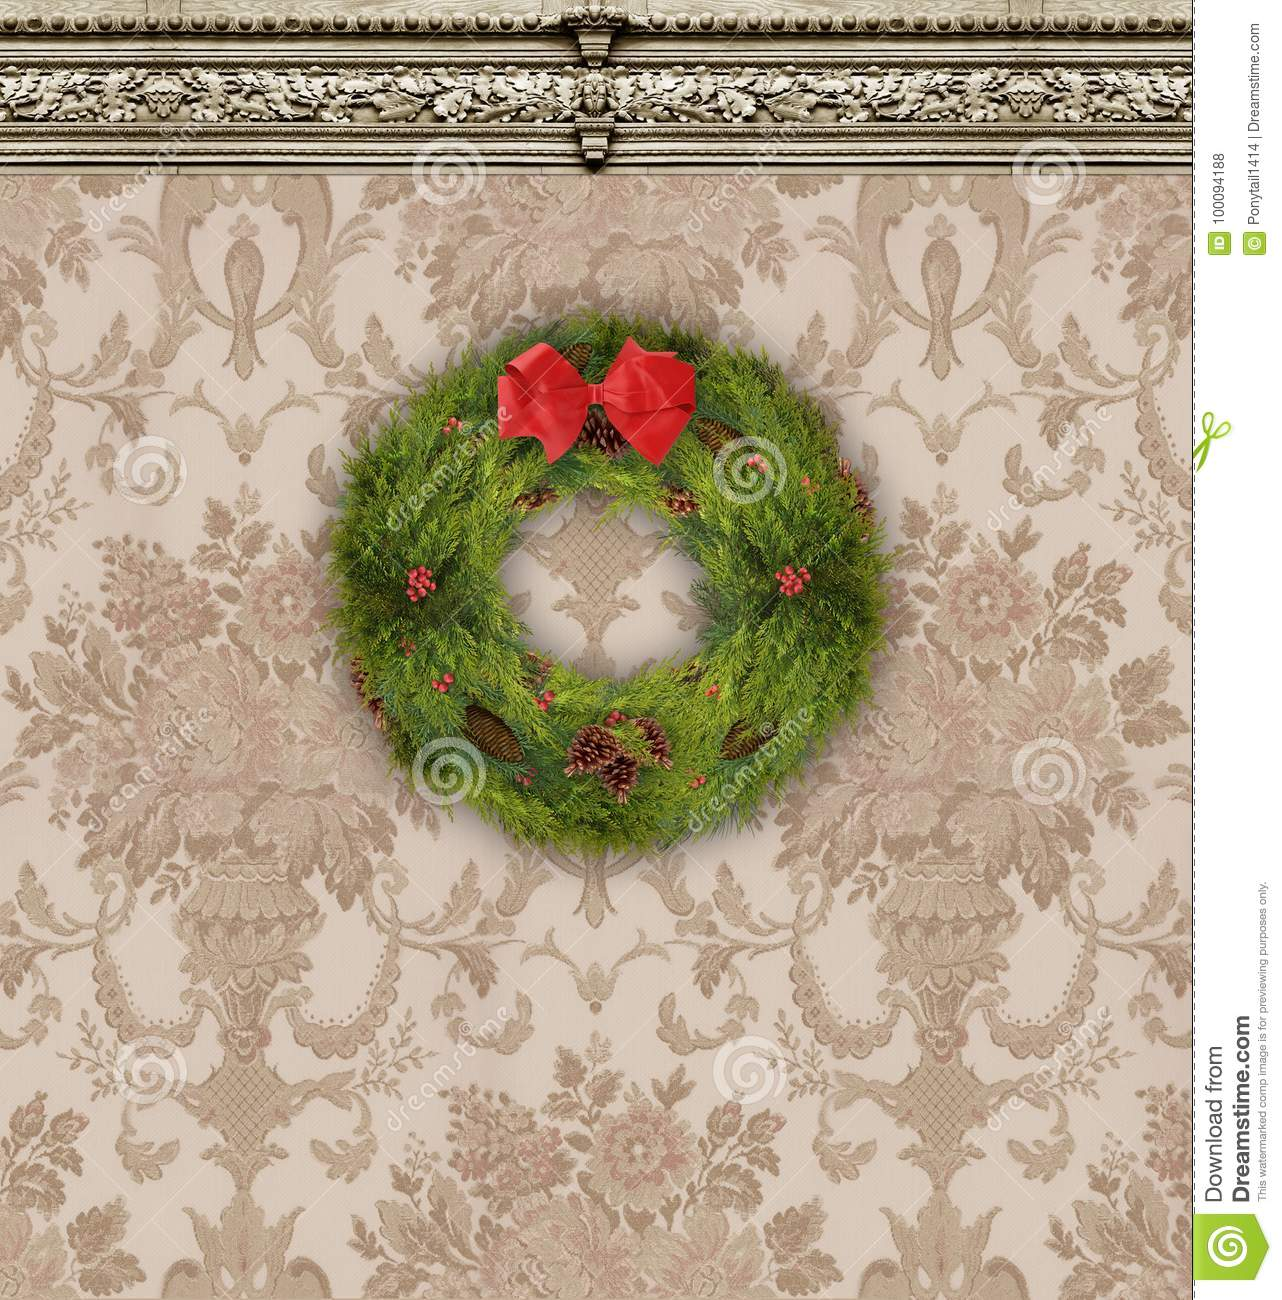 Christmas Wreath on Tan Damask Wallpaper With Ornate Molding